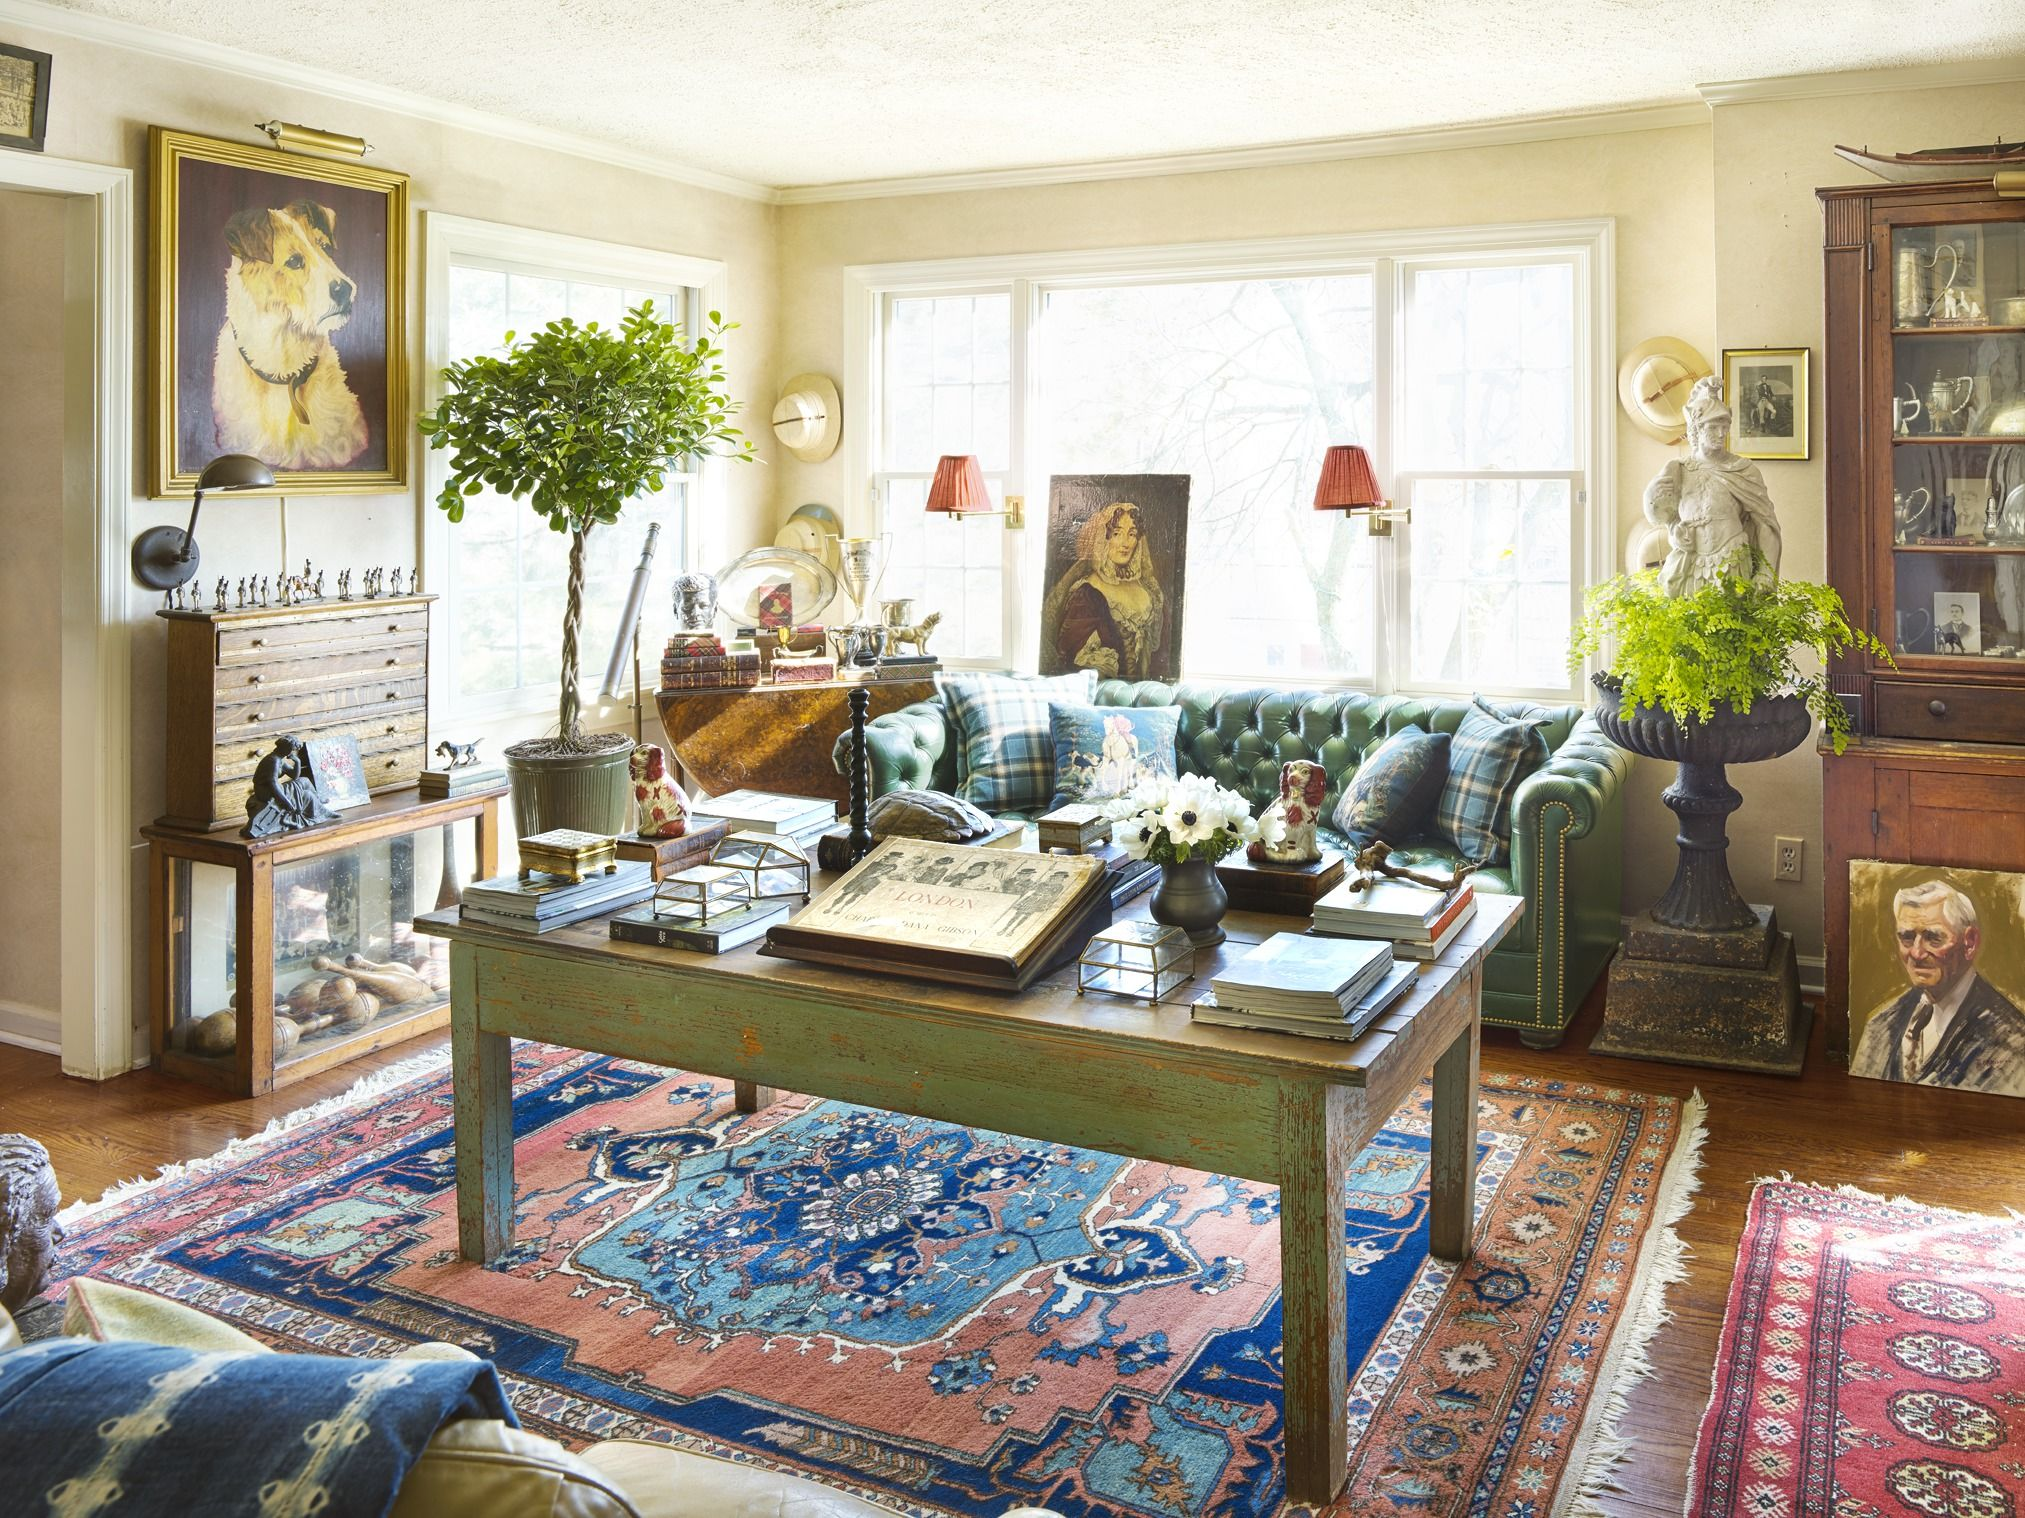 room color schemes colorful decorating ideas rh countryliving com colorful decorating ideas for living rooms warm colors decorating ideas